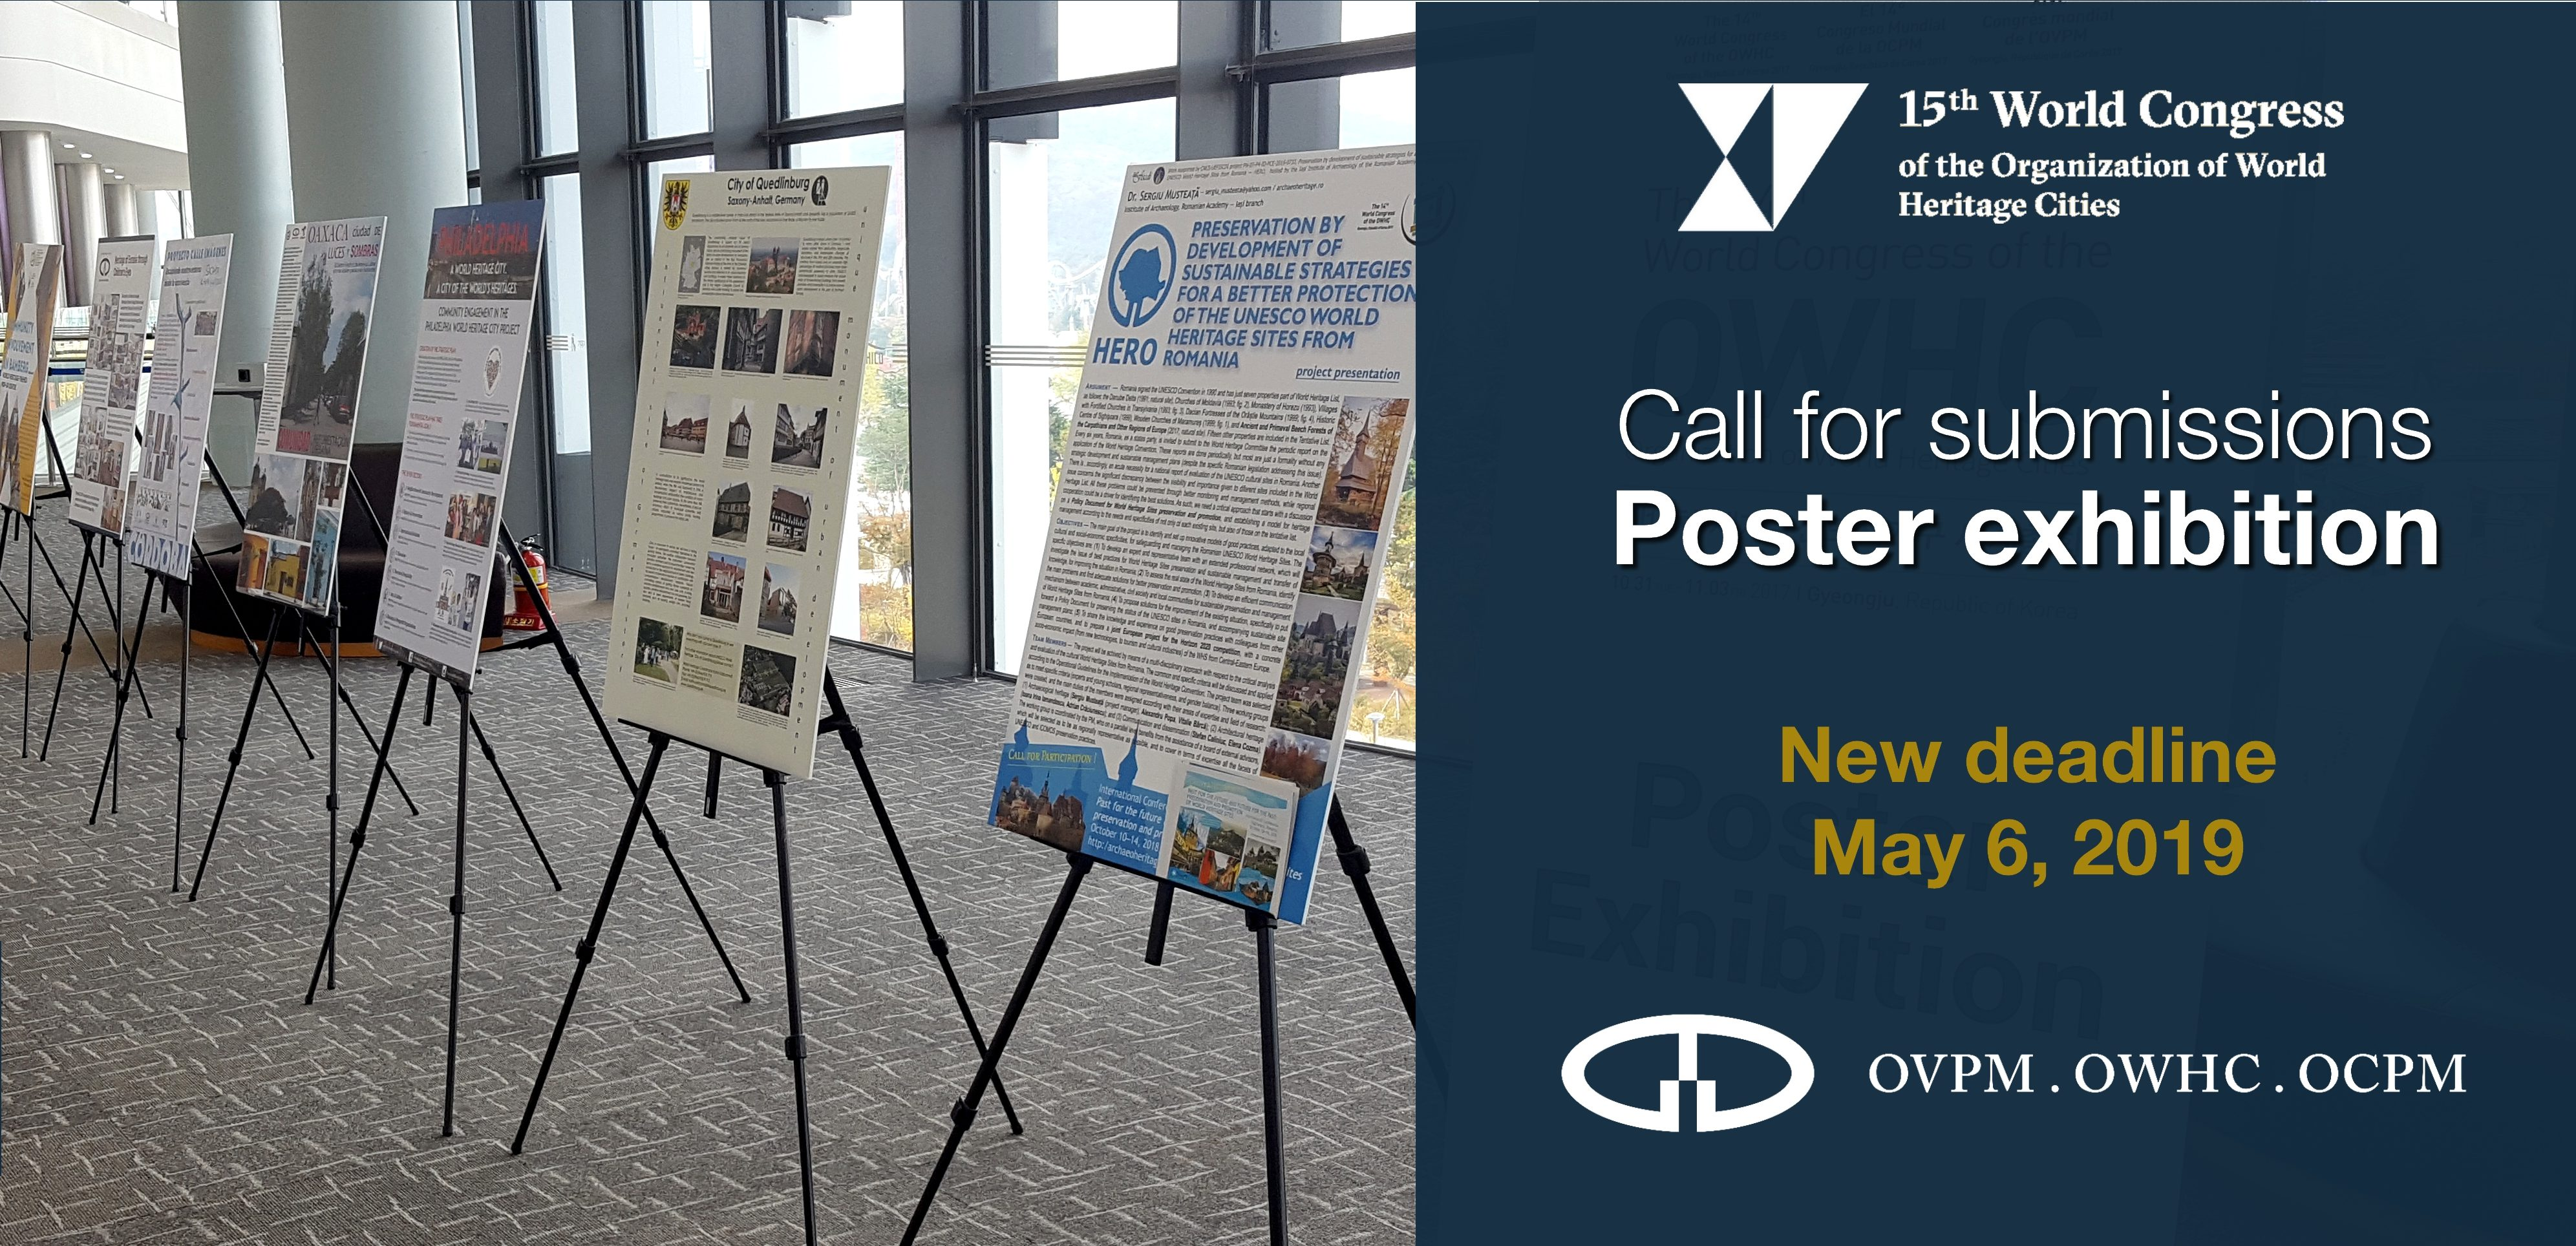 Call for submissions for the poster exhibition - New deadline: May 6, 2019  - Organization of World Heritage Cities